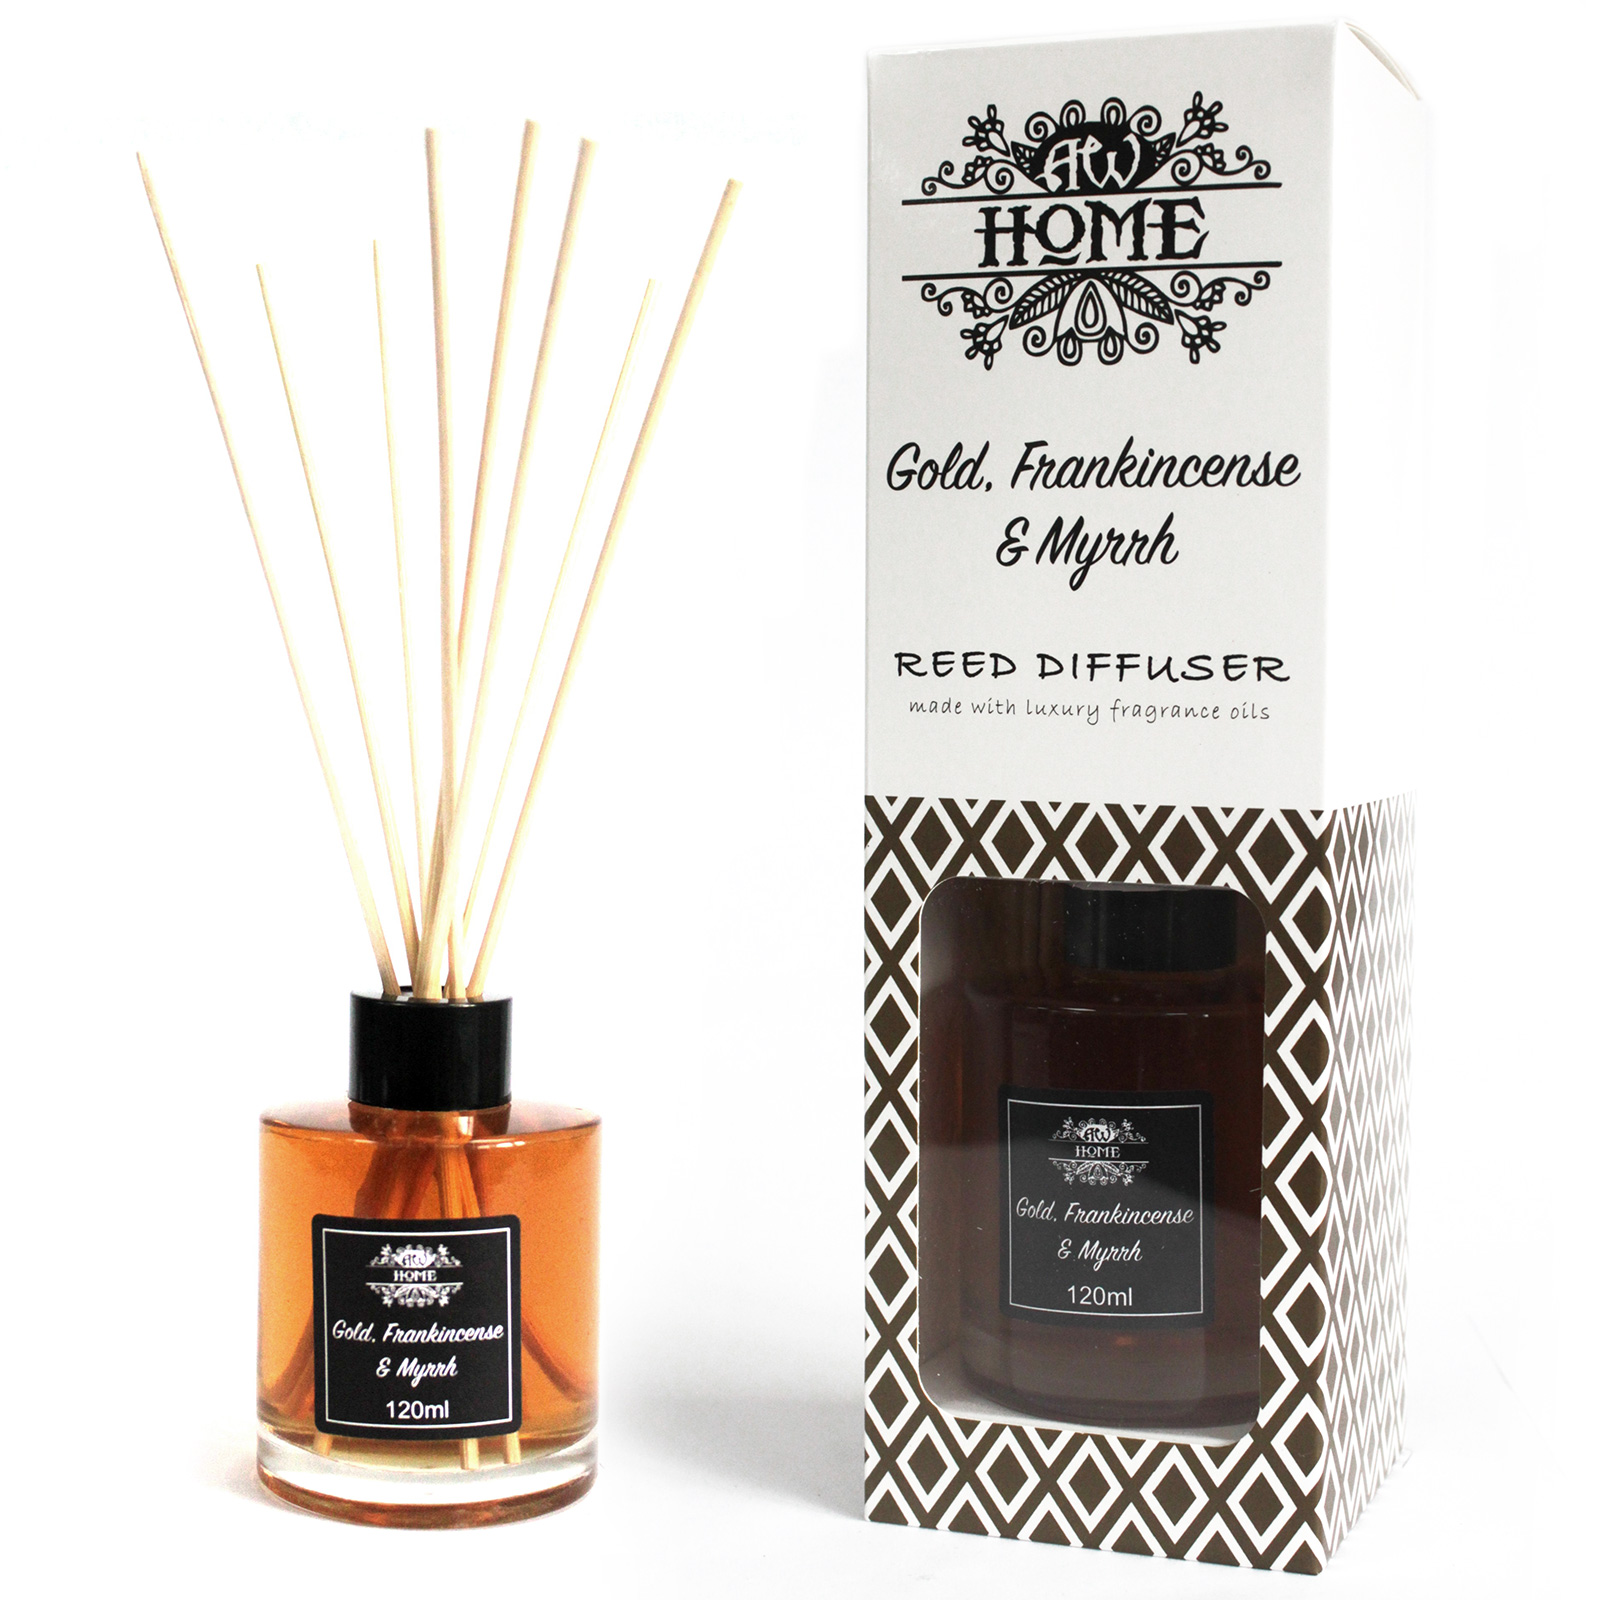 120ml Reed Diffuser - Gold, Frankincense & Myrrh